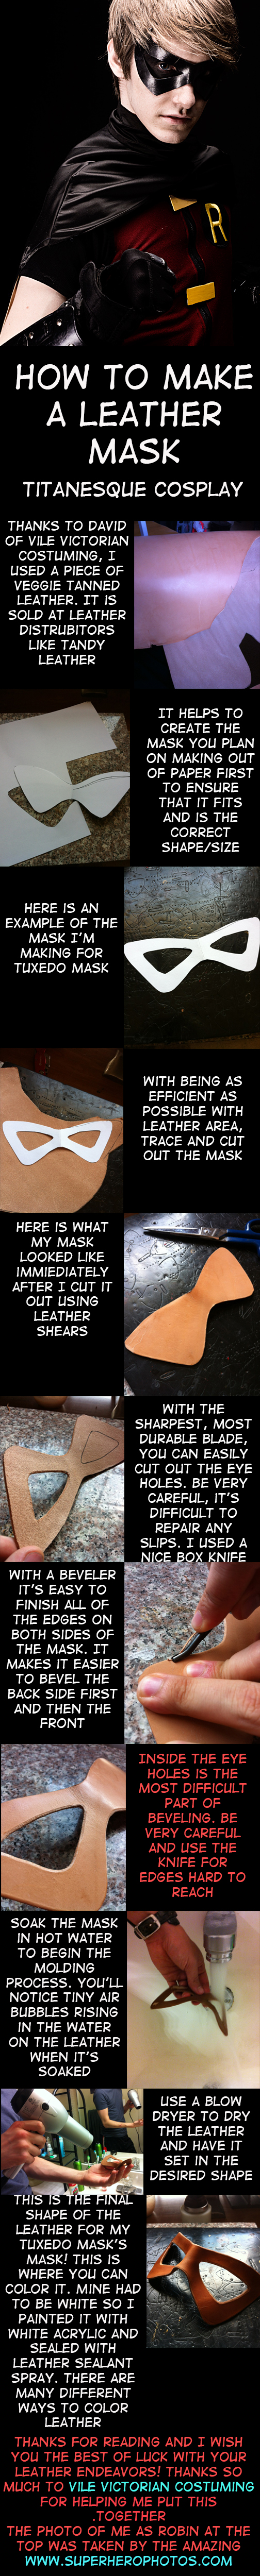 Leather Mask Tutorial by TitanesqueCosplay